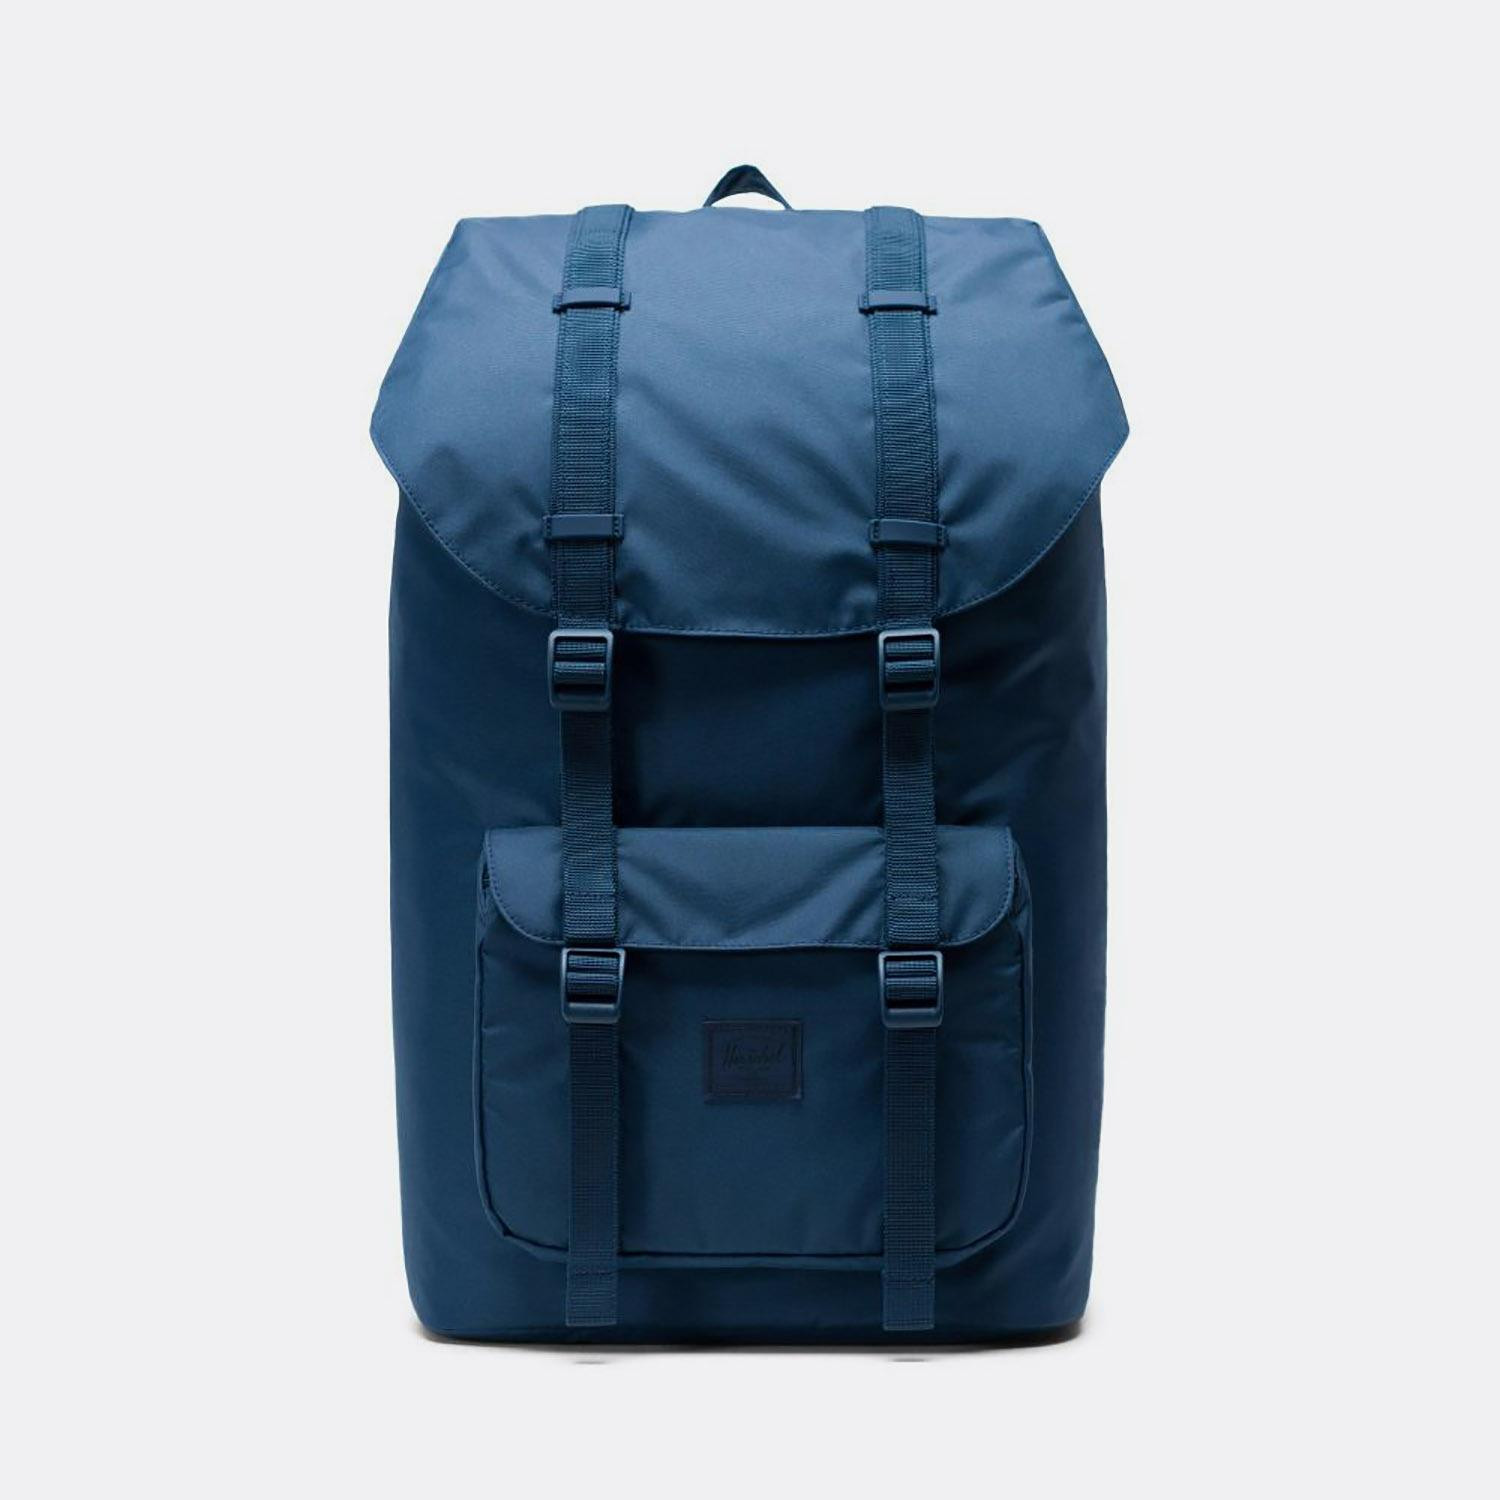 Herschel Little America Backpack (9000027400_1629)